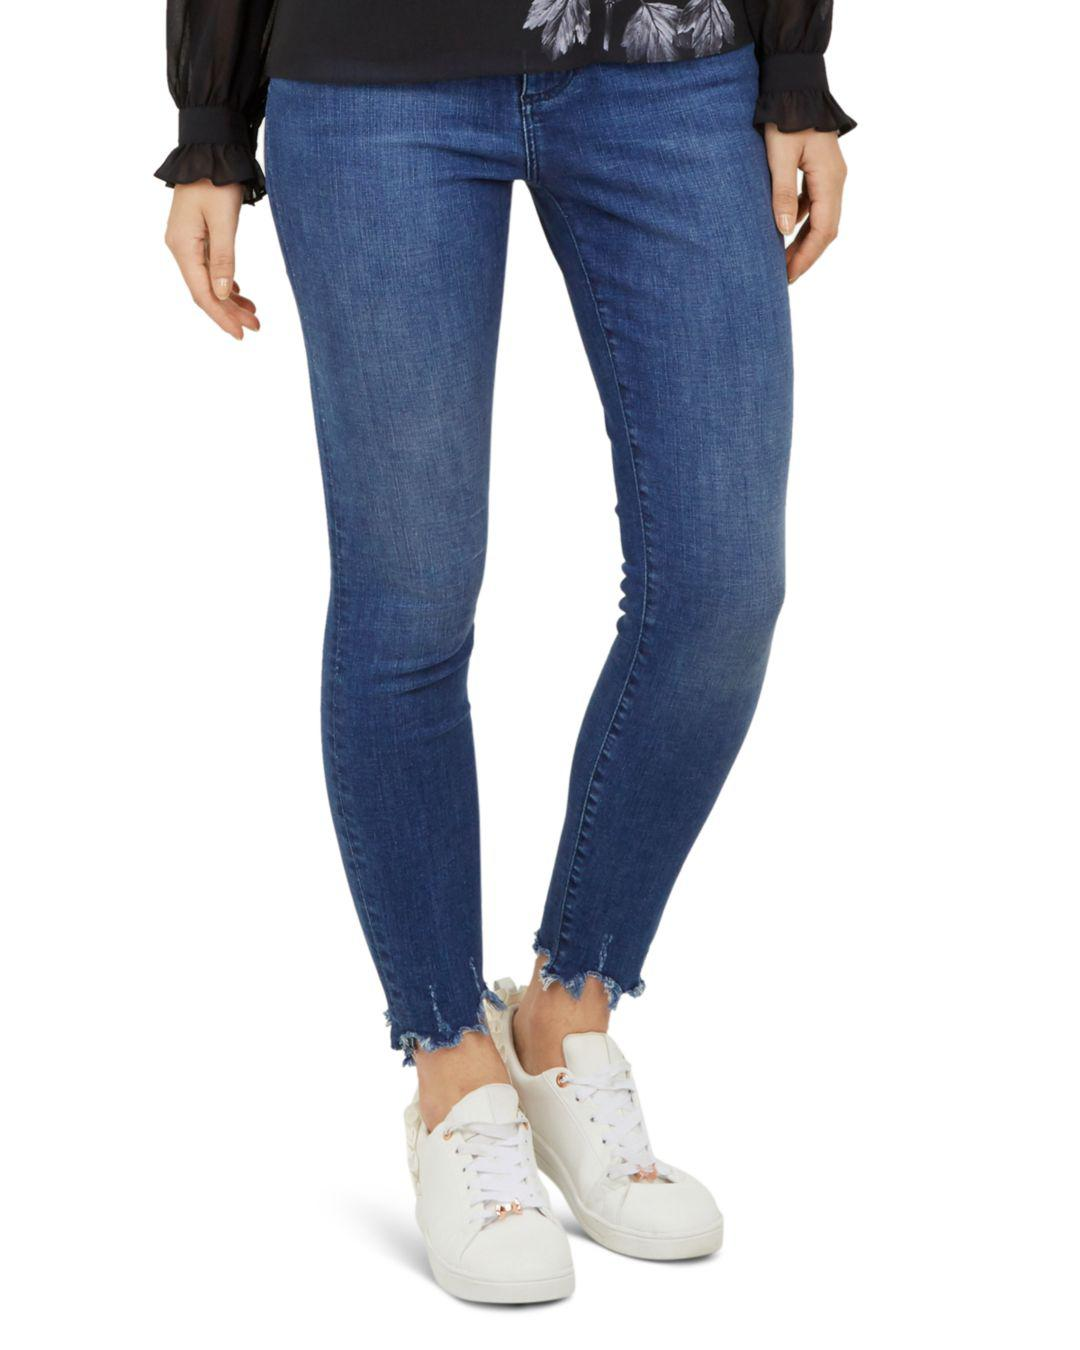 30af546f6db063 Lyst - Ted Baker Catrina Distressed-hem Skinny Jeans In Mid Blue in Blue